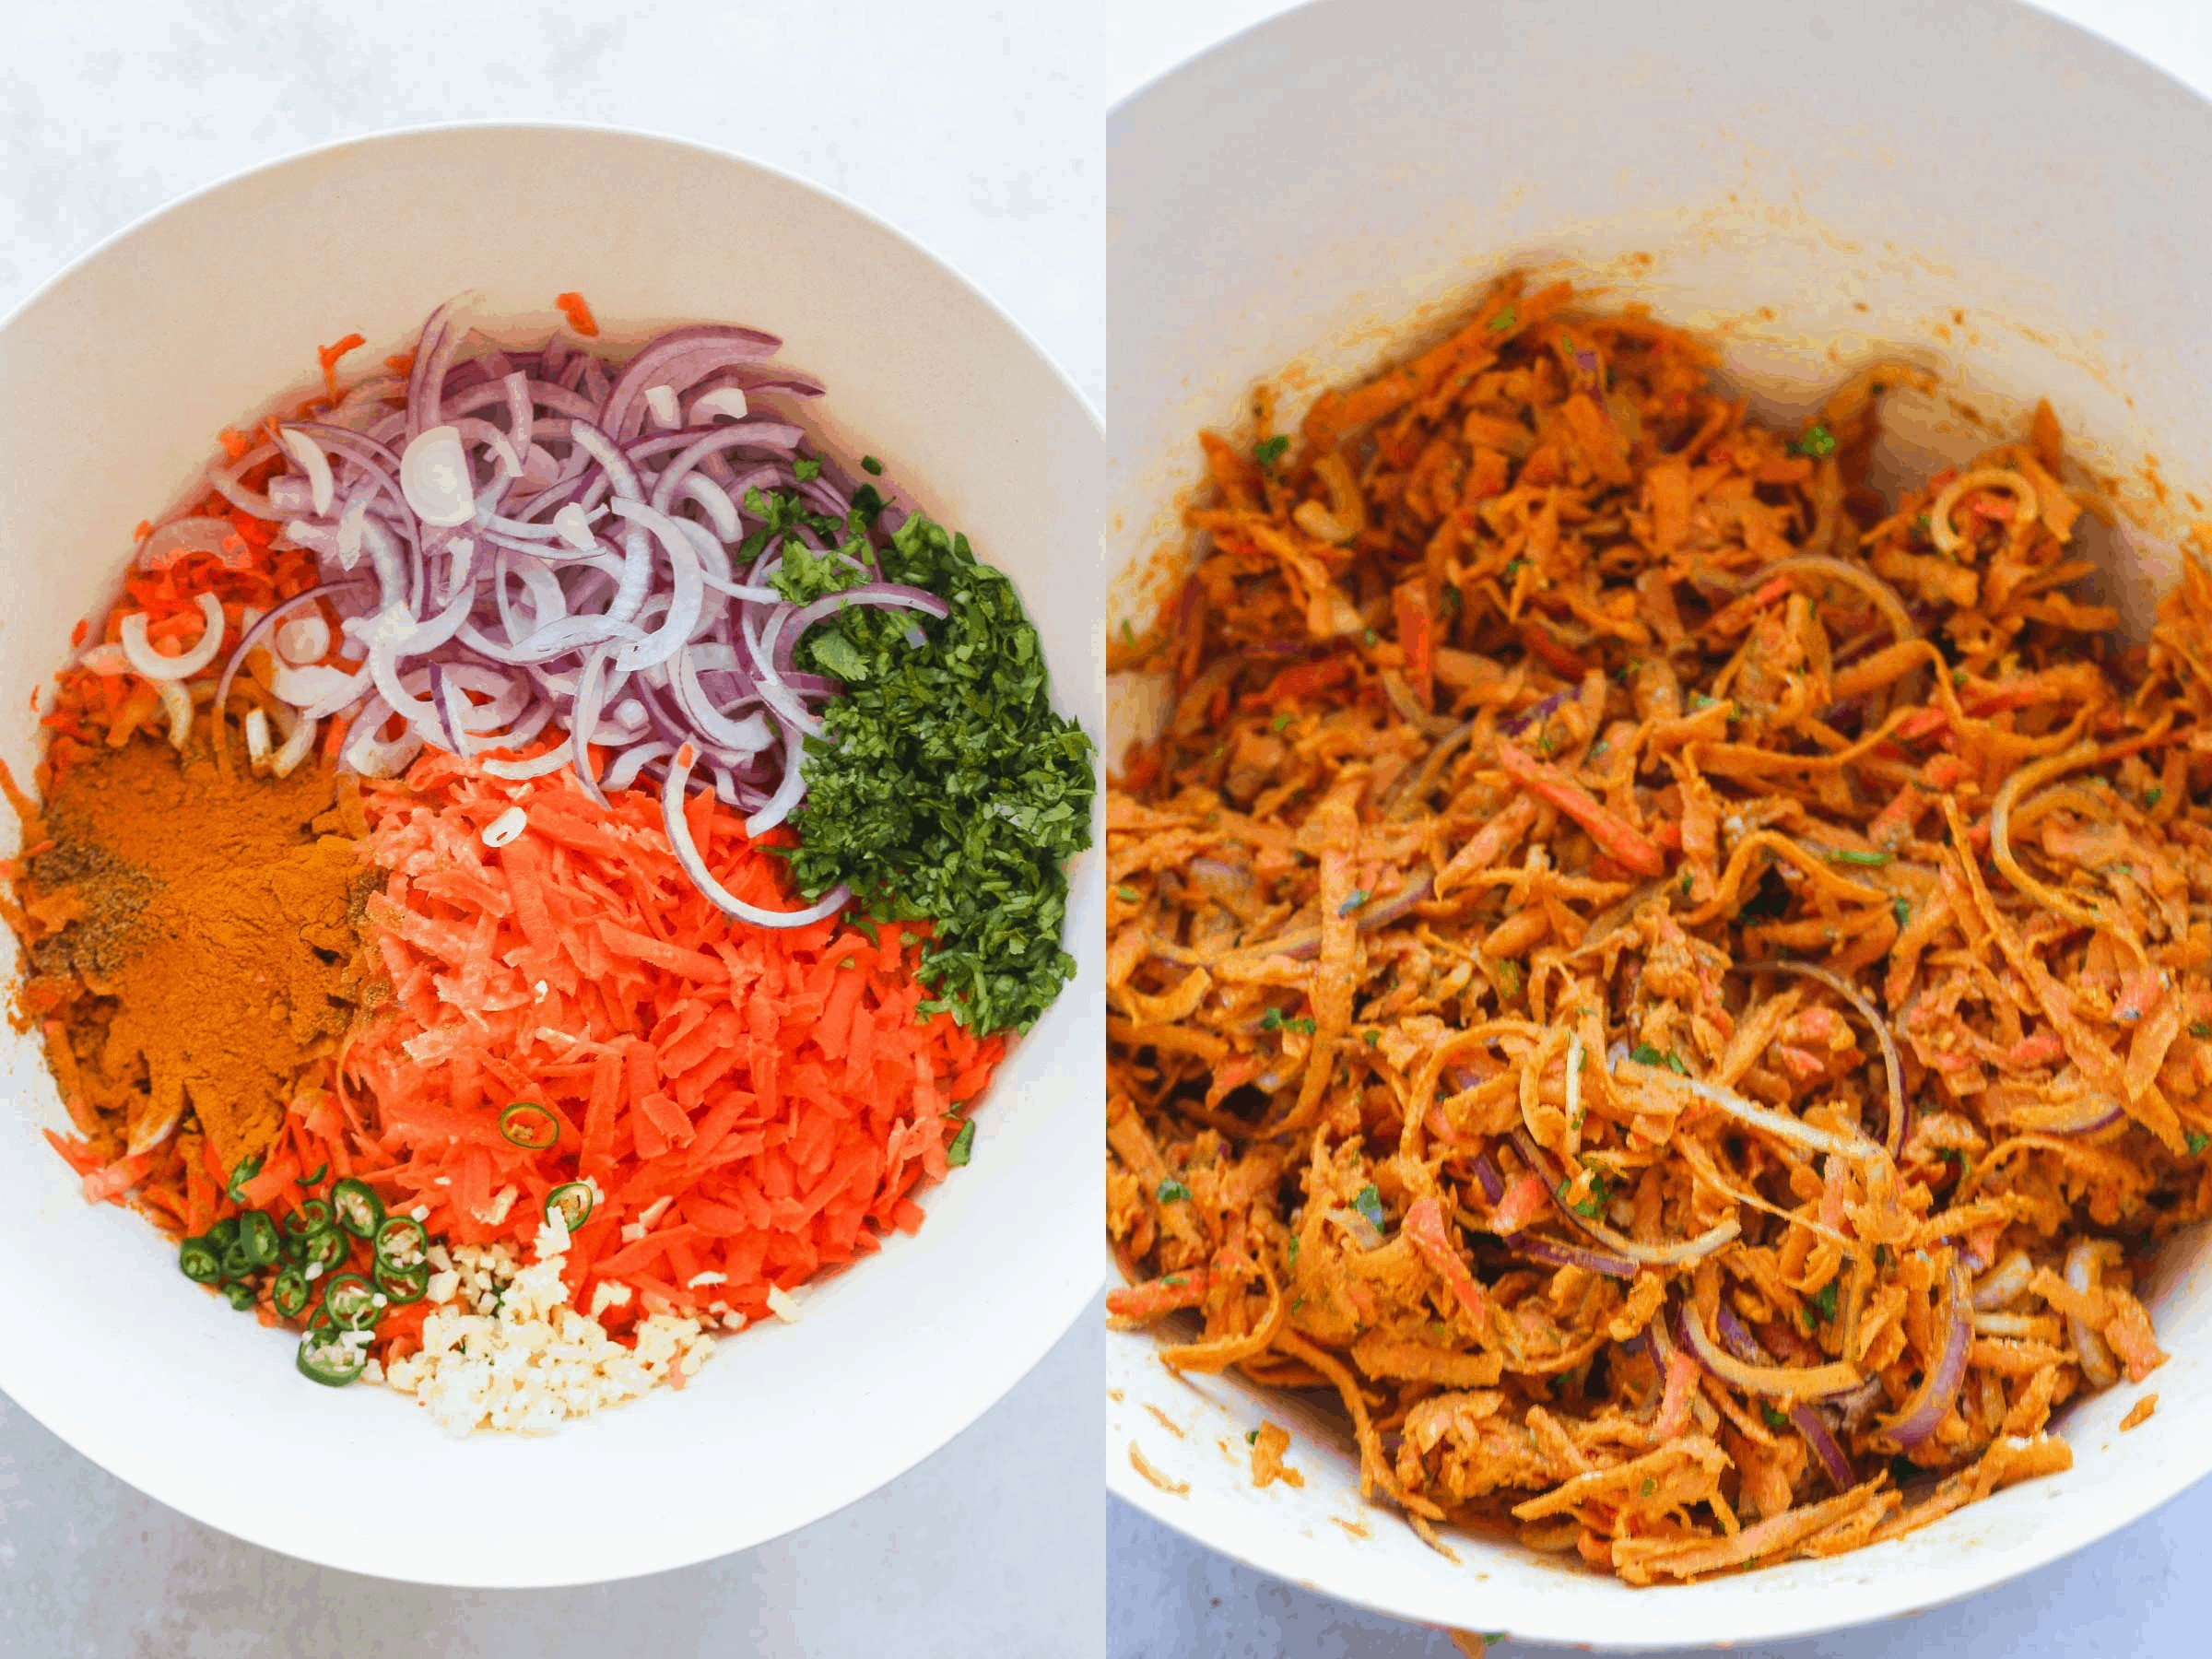 Mixing the vegetables and spices in a bowl to make the mixture for bhaji burgers